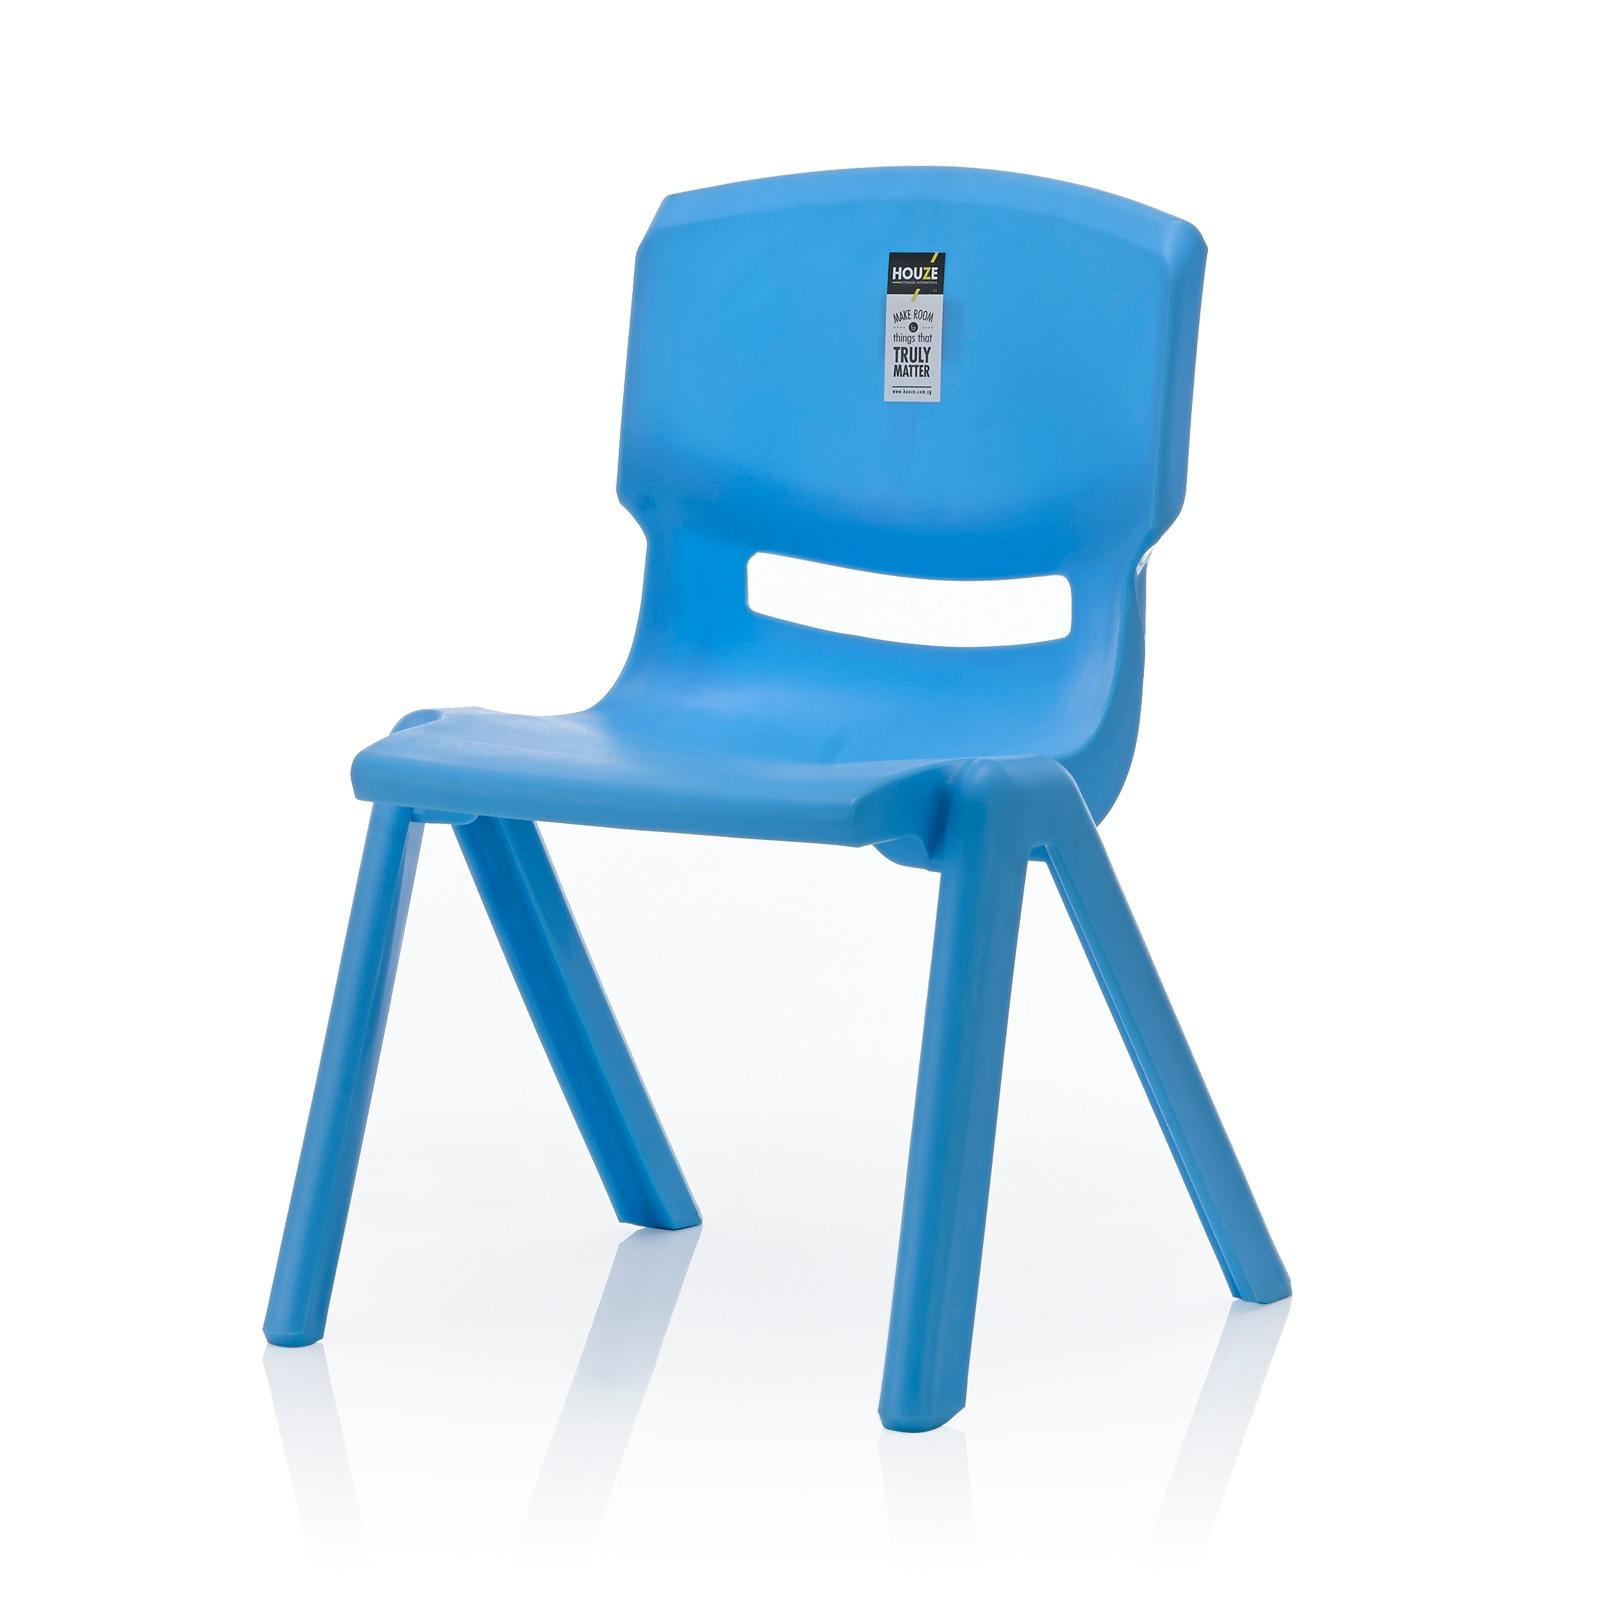 HOUZE   Signature Kids Chair With Backrest (Blue)